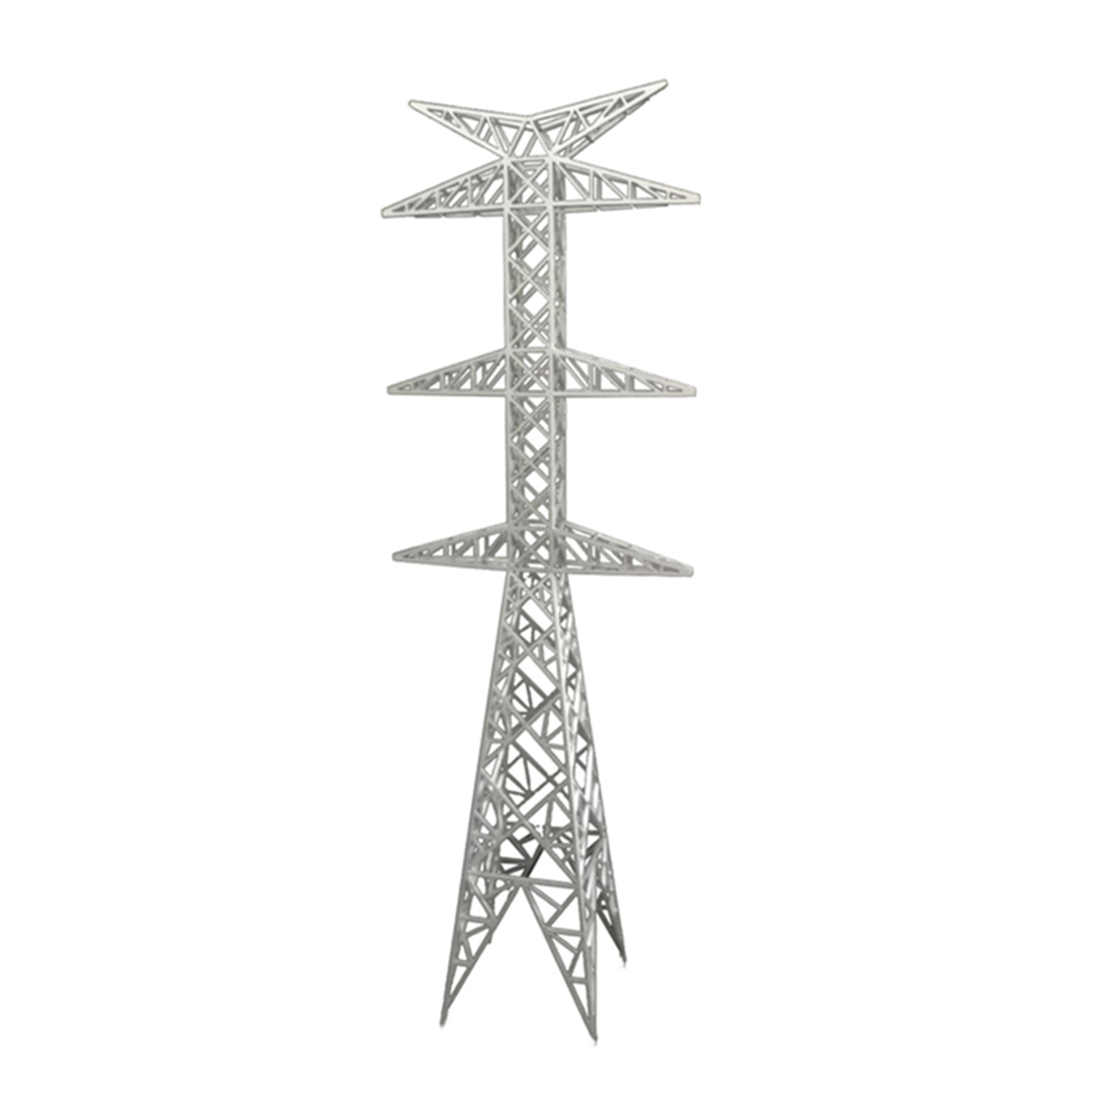 40 X 6.9 X 6.9cm DIY Sand Table Electric Tower Model Transmission Tower Decoration  Miniatures Landscape - Silver Grey